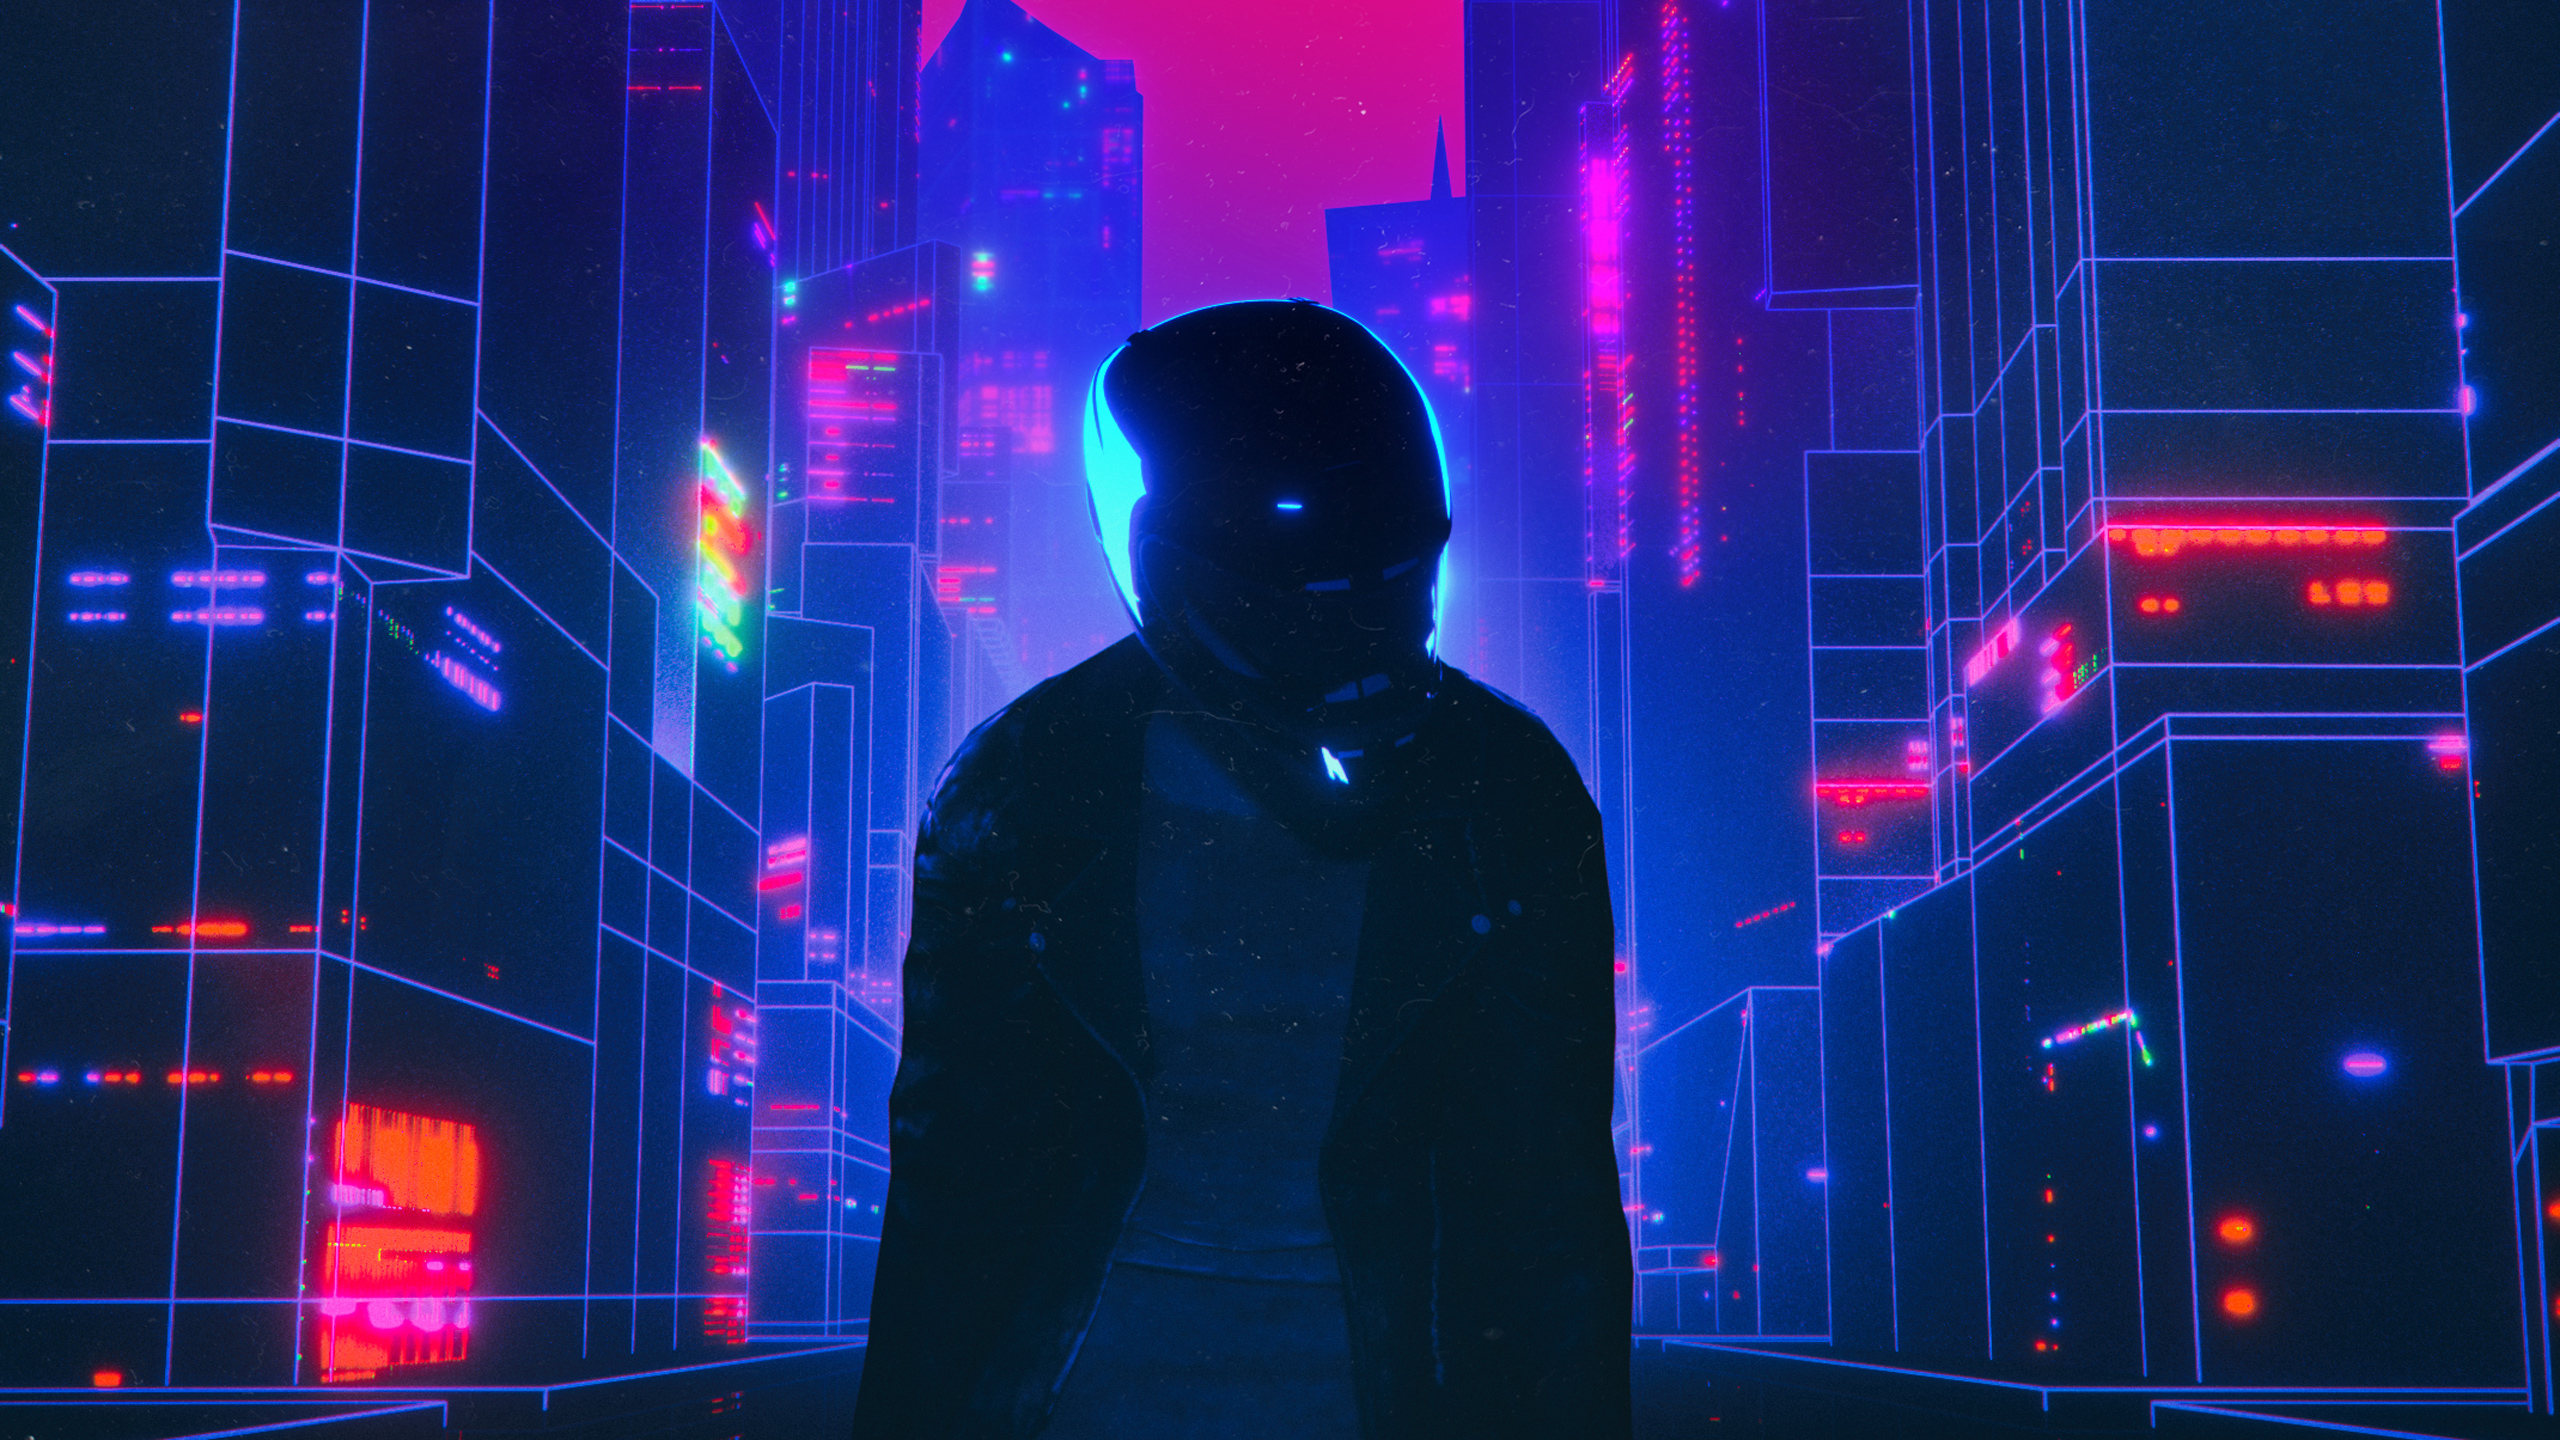 Biker Retrowave Hd Artist 4k Wallpapers Images Backgrounds Photos And Pictures